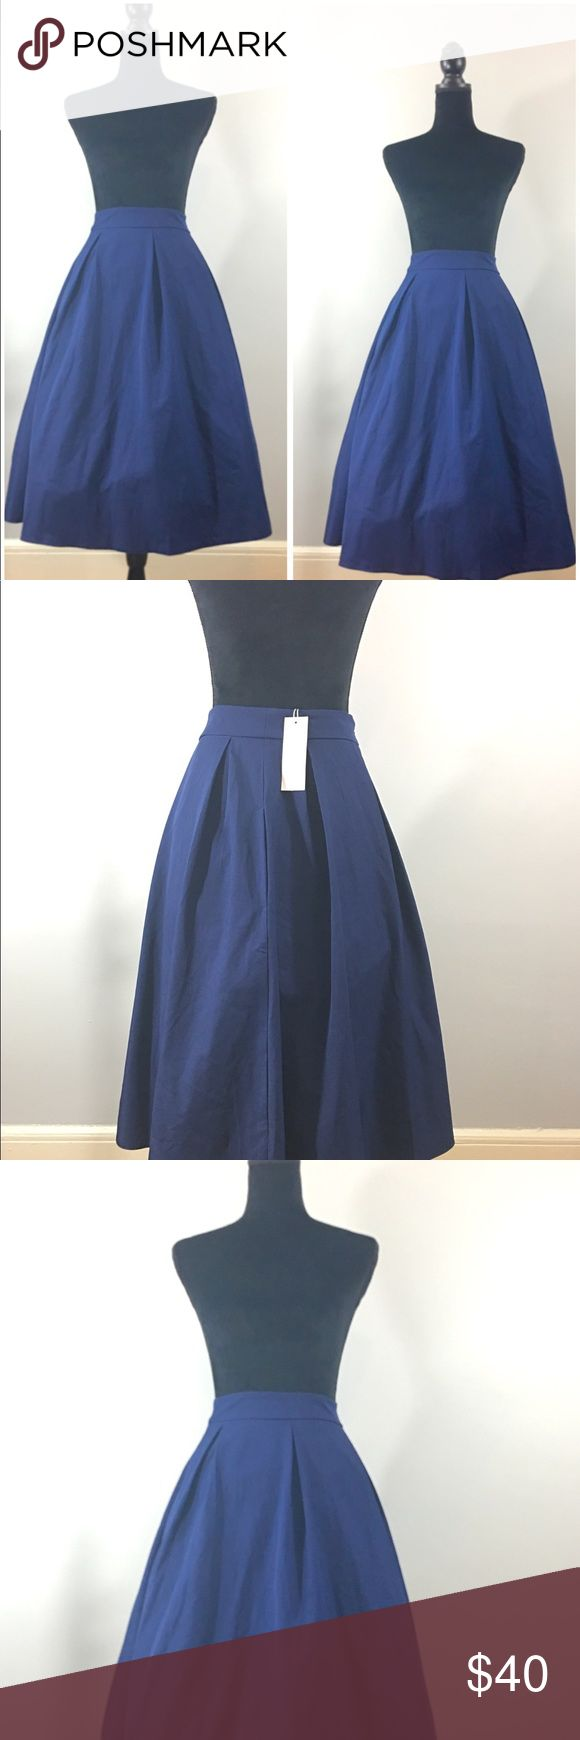 Navy Blue Midi Skirt Rockabilly Size Medium.